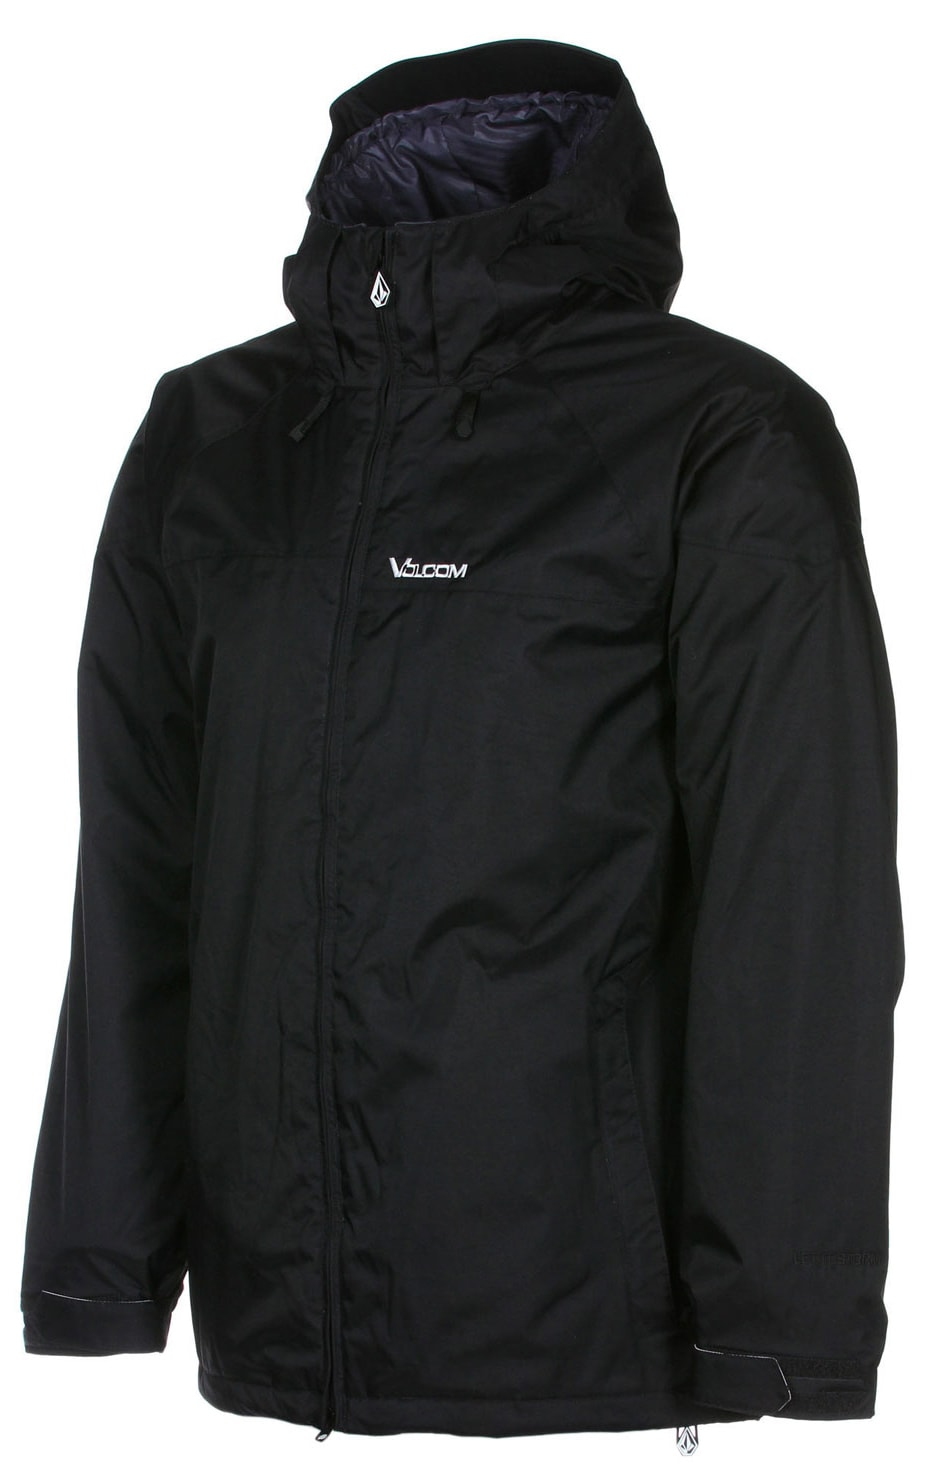 Shop for Volcom Cross Stone Insulated Snowboard Jacket Black - Men's